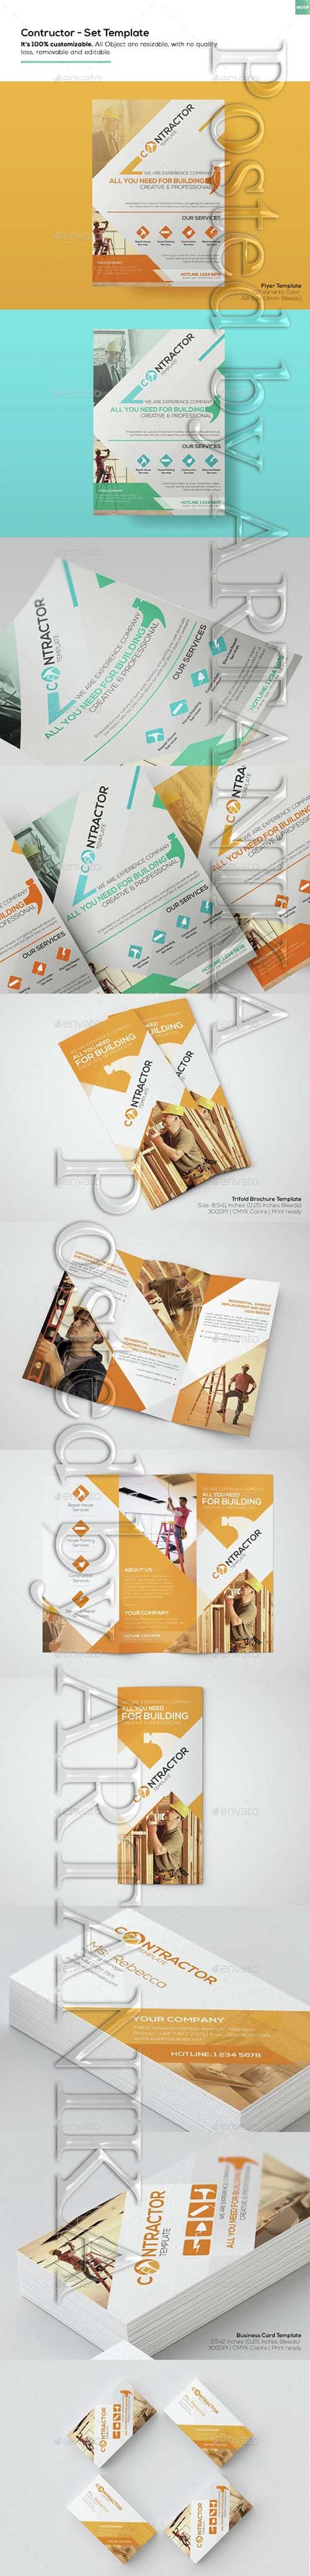 Graphicriver - Contractor - Set Templates 15314033